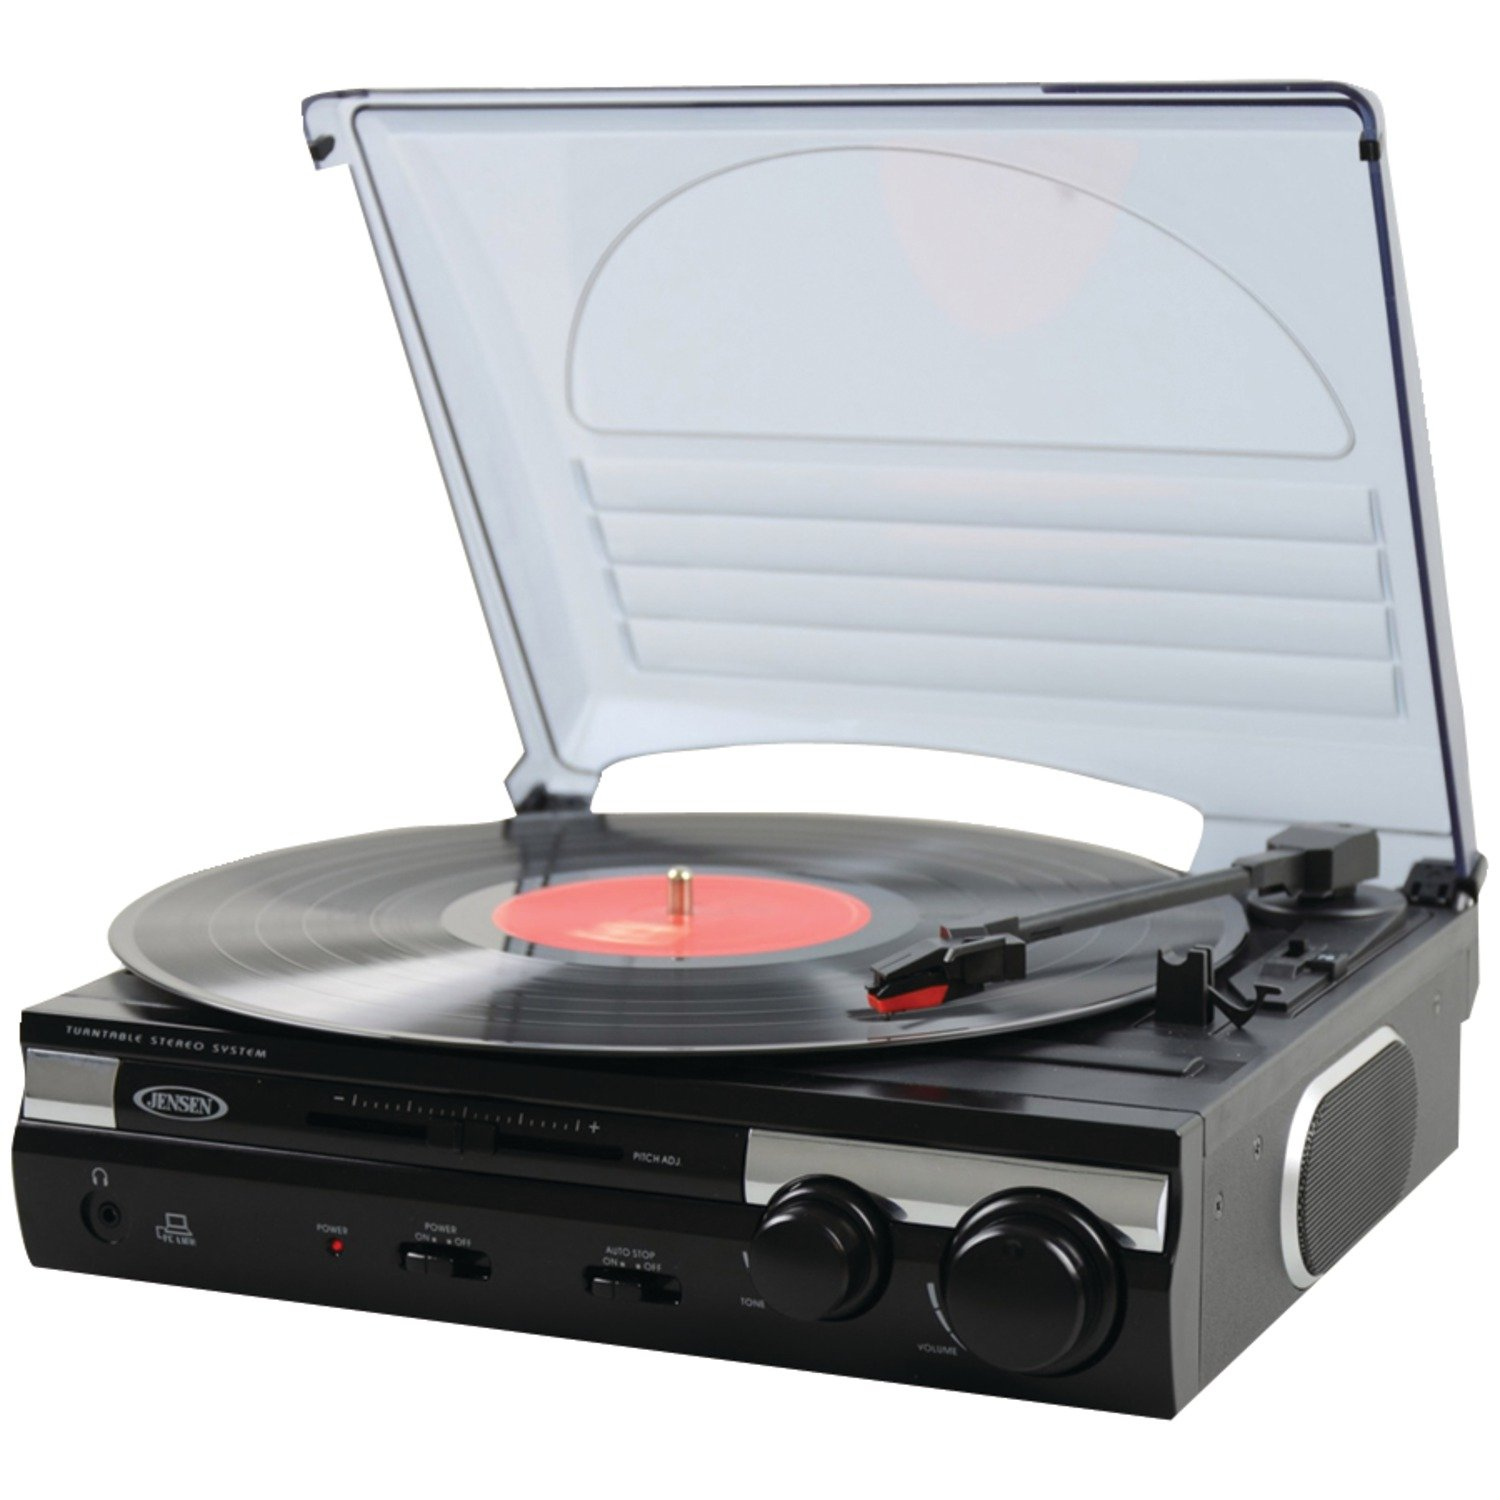 Amazon.com: Jensen JTA 230 3 Speed Stereo Turntable With Built In Speakers:  Home Audio U0026 Theater